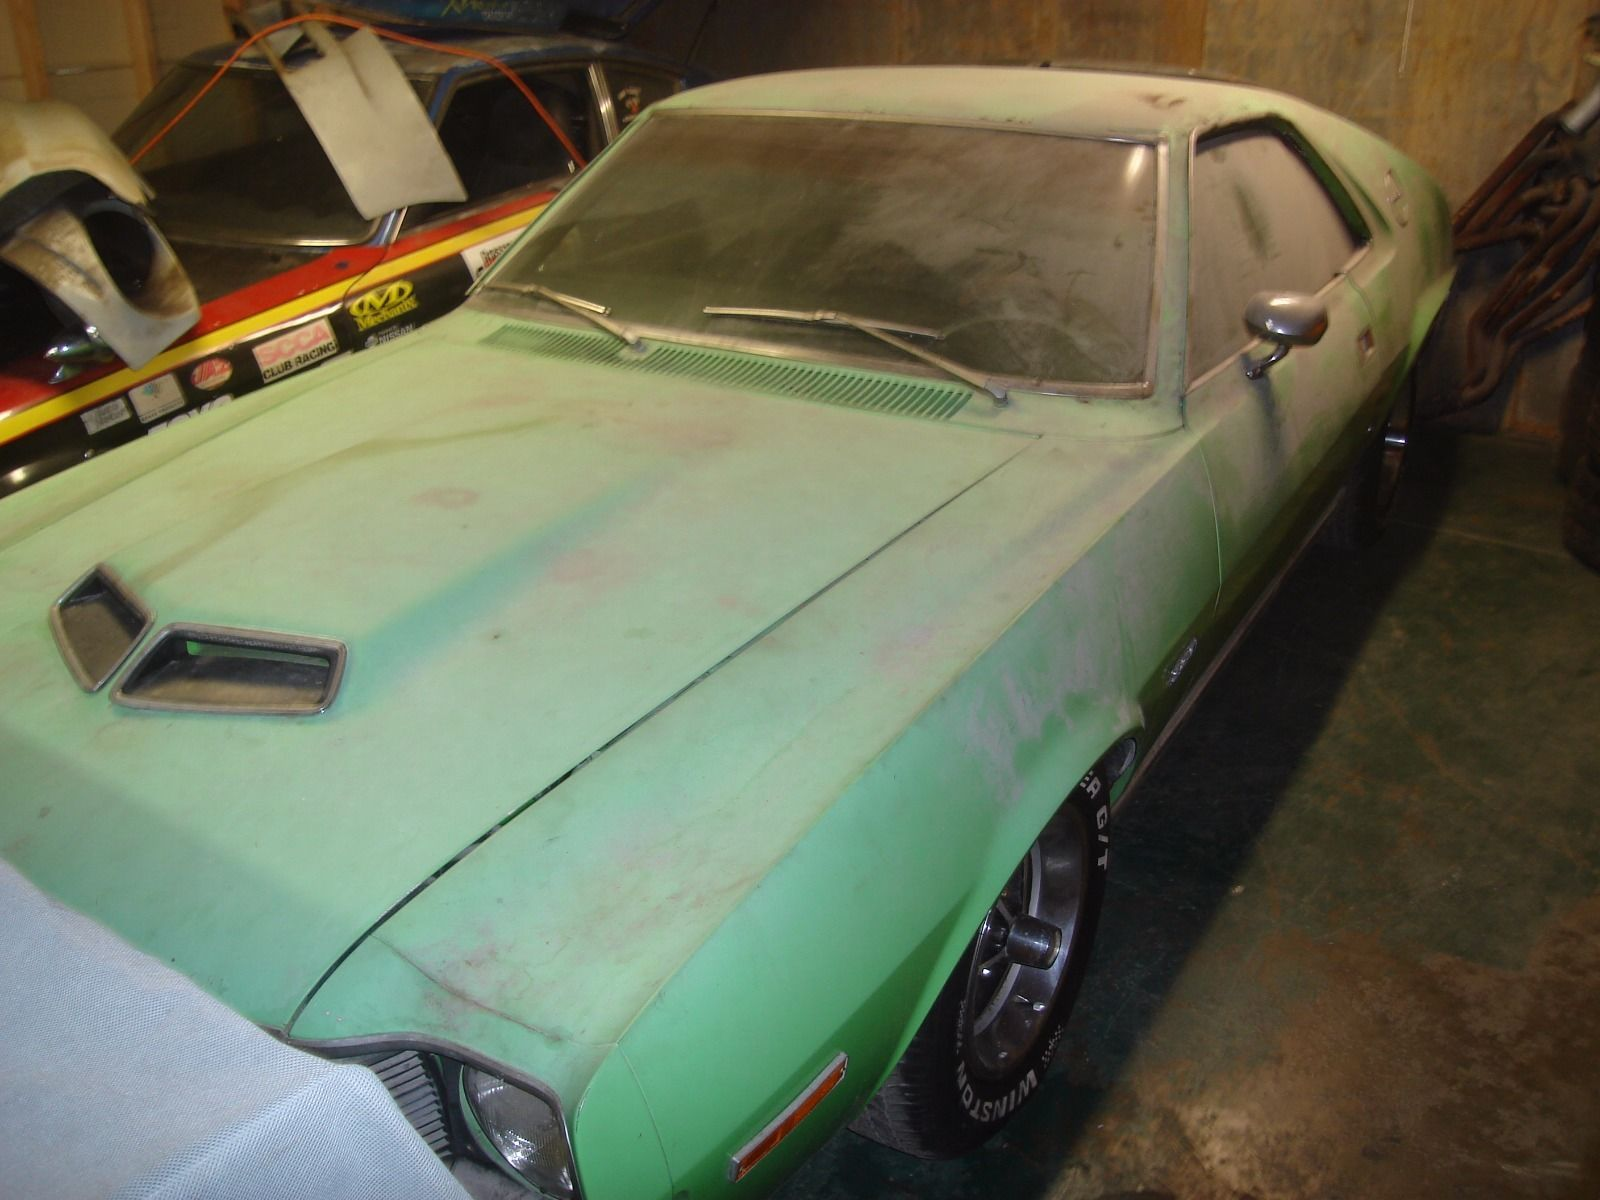 Amc Amx Barn Find Barn Finds For Sale besides Amc Gremlin American Cars For Sale together with Rambler Marlin Fastback as well  likewise Amc Gremlin X American Cars For Sale X X. on 1965 rambler american sale